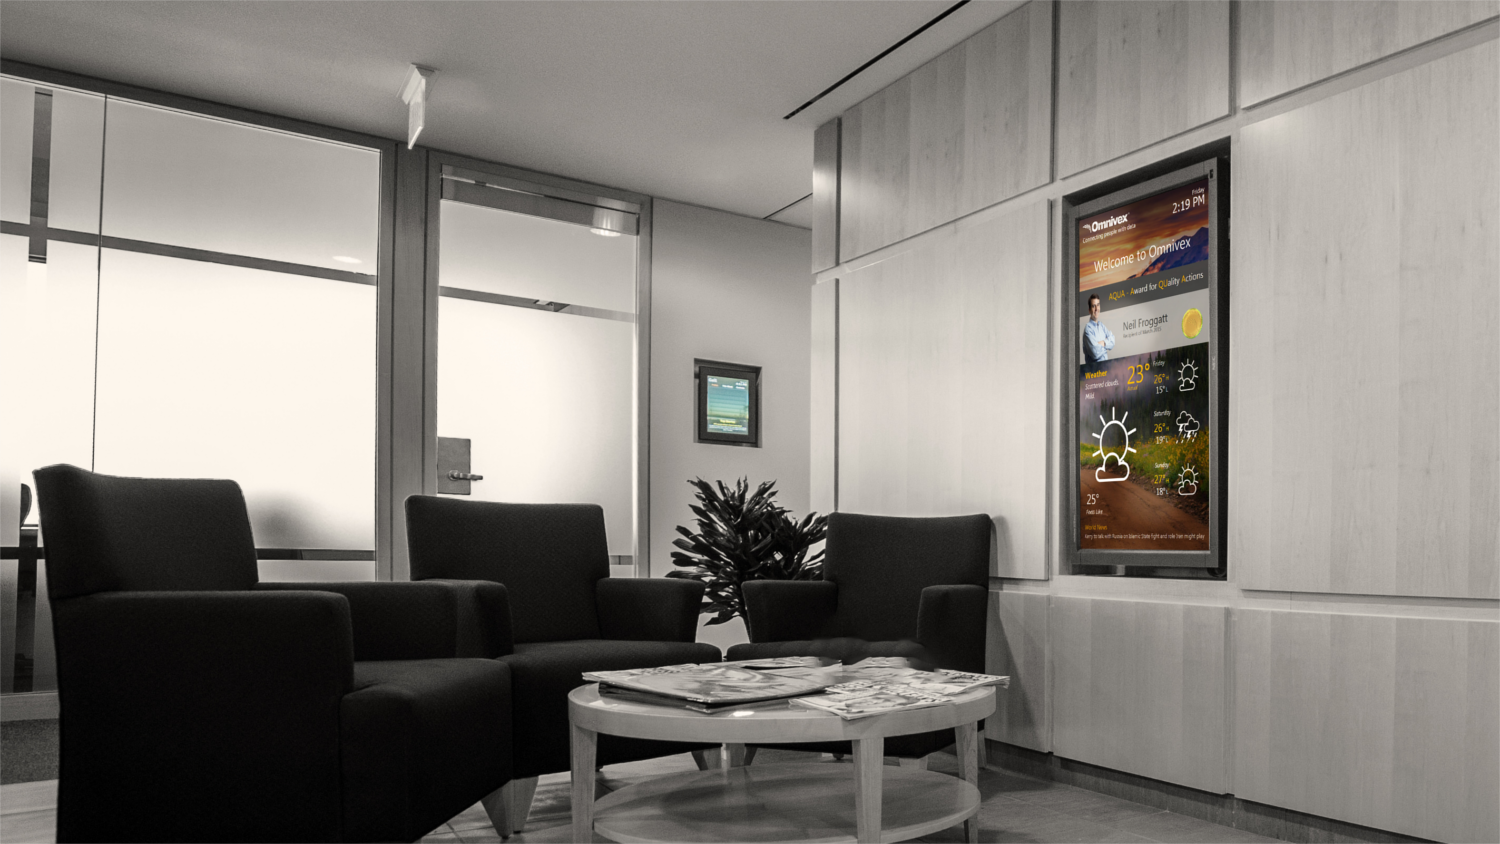 Impress your visitors while reinforcing corporate messaging.